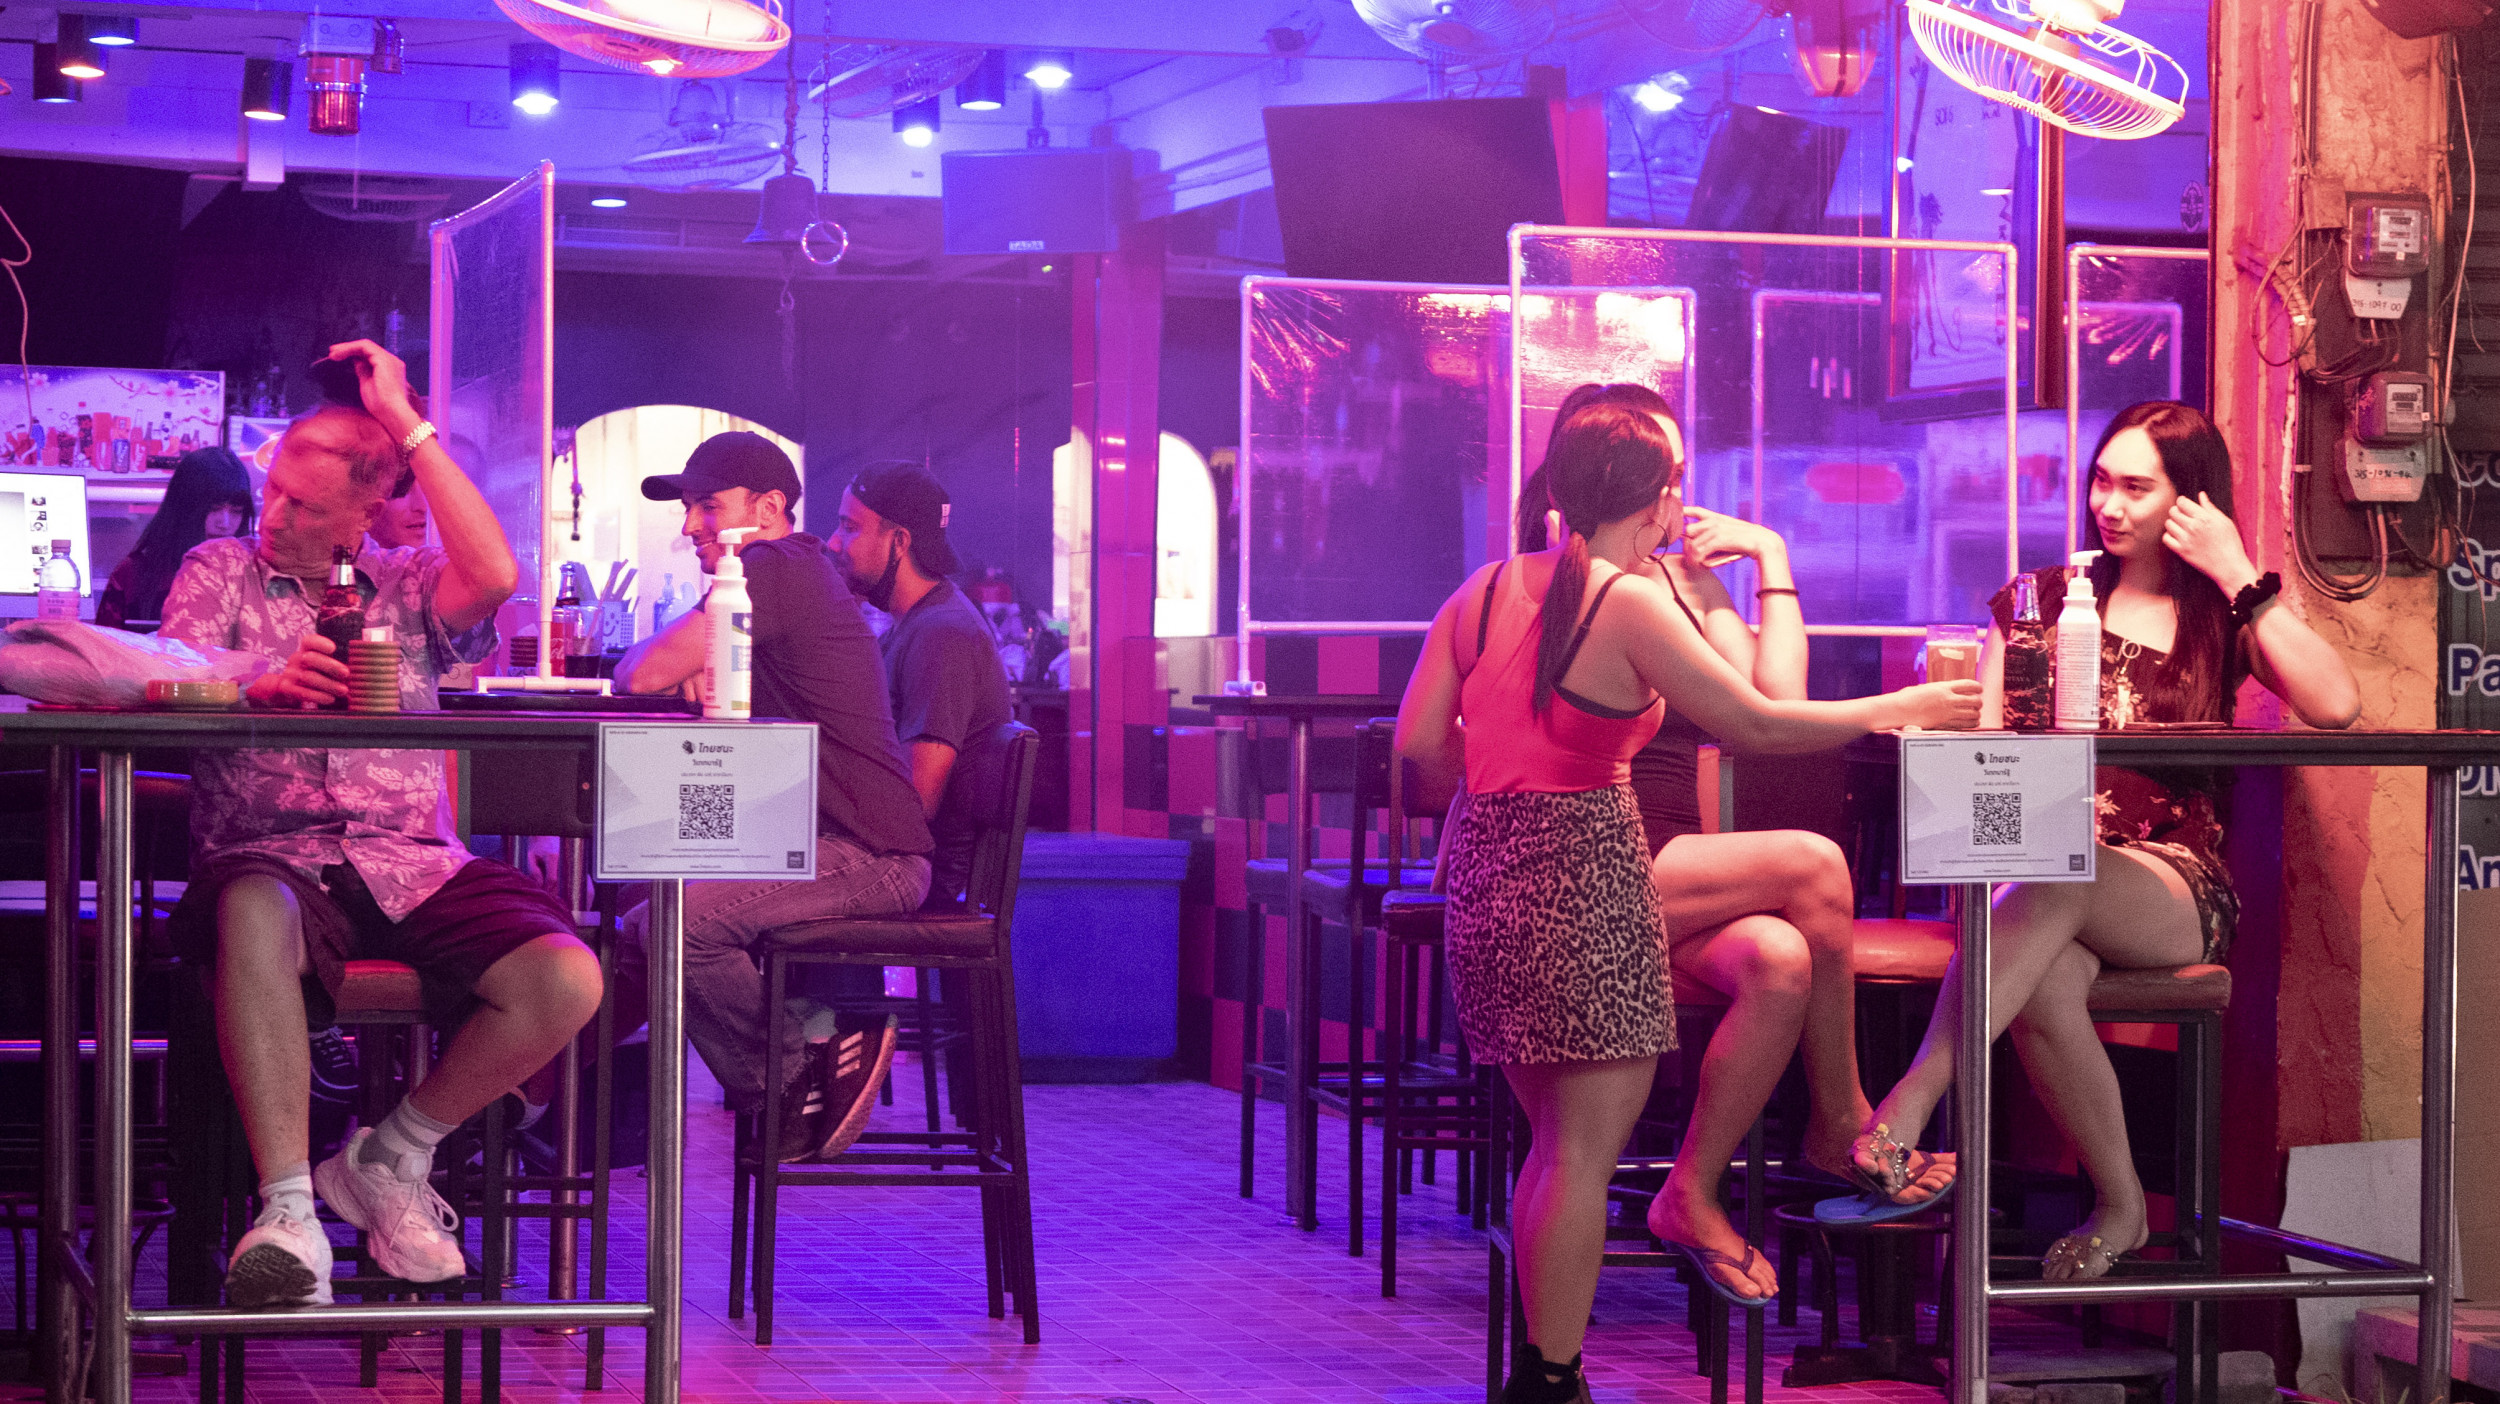 Experience thailand prostitution My experience